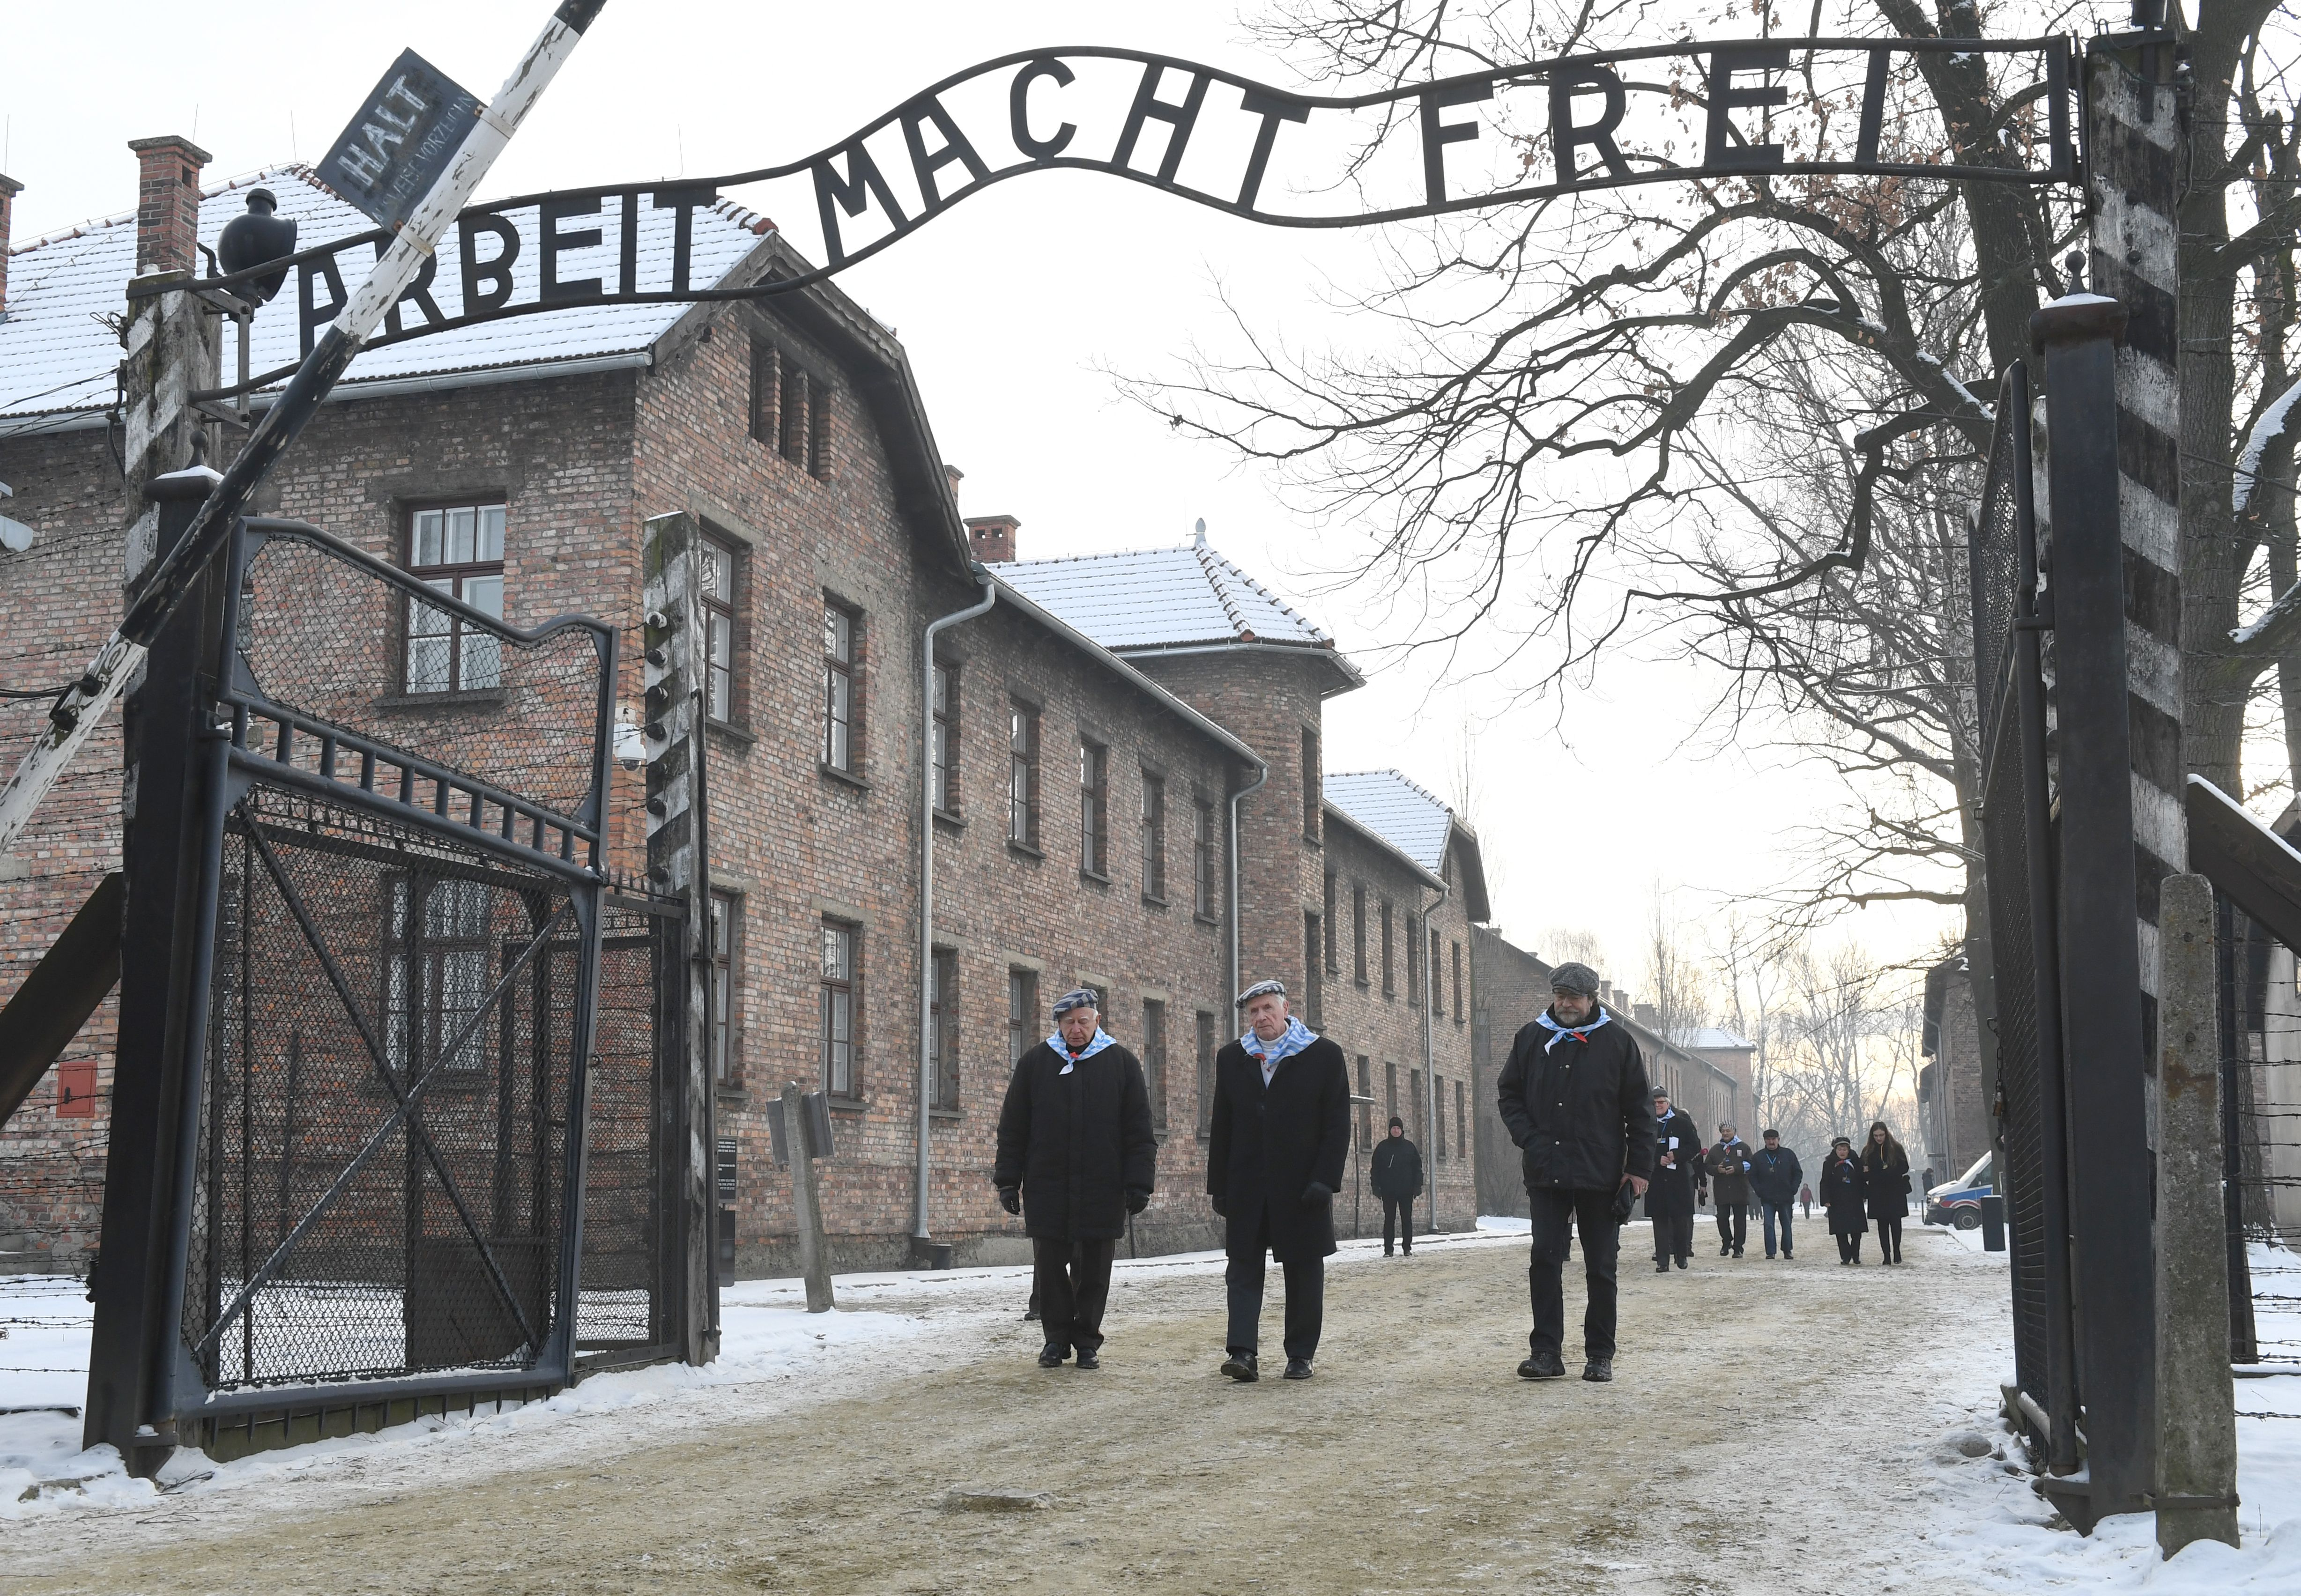 People pass the main gate after the 74th anniversary of the liberation of former German Nazi death camp Auschwitz-Birkenau, in Oswiecim, Poland, on January 27, 2019. (Photo by Janek SKARZYNSKI / AFP)        (Photo credit should read JANEK SKARZYNSKI/AFP/Getty Images)